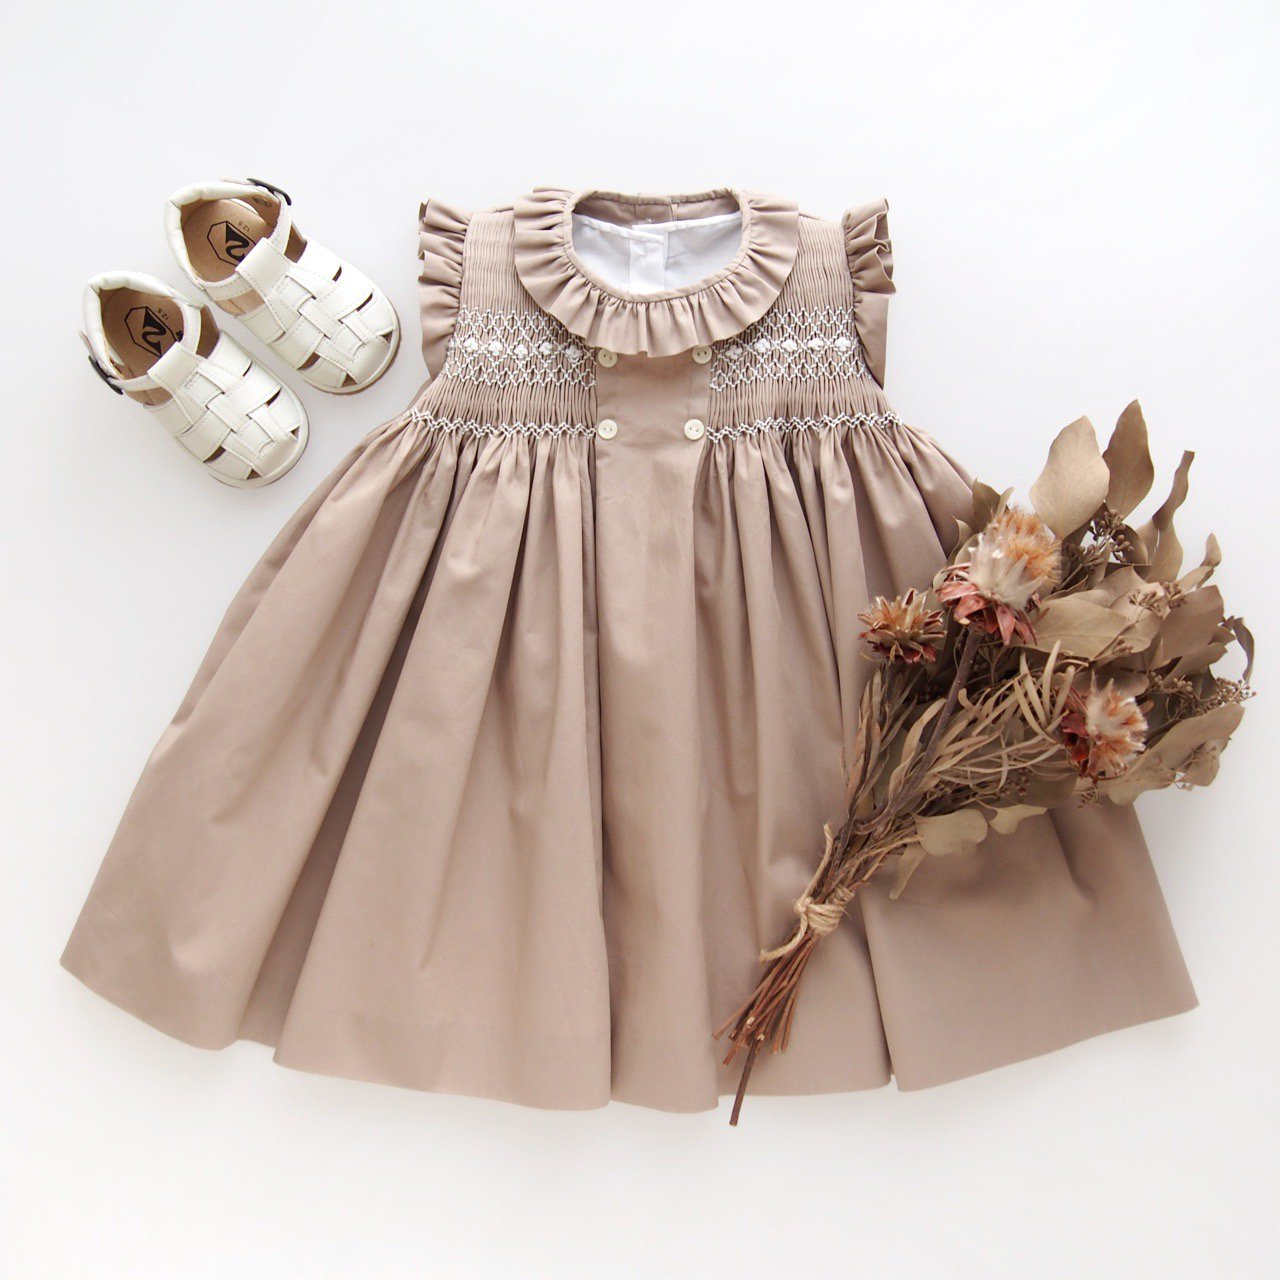 <img class='new_mark_img1' src='https://img.shop-pro.jp/img/new/icons1.gif' style='border:none;display:inline;margin:0px;padding:0px;width:auto;' />Aruca - Canela smocked dress